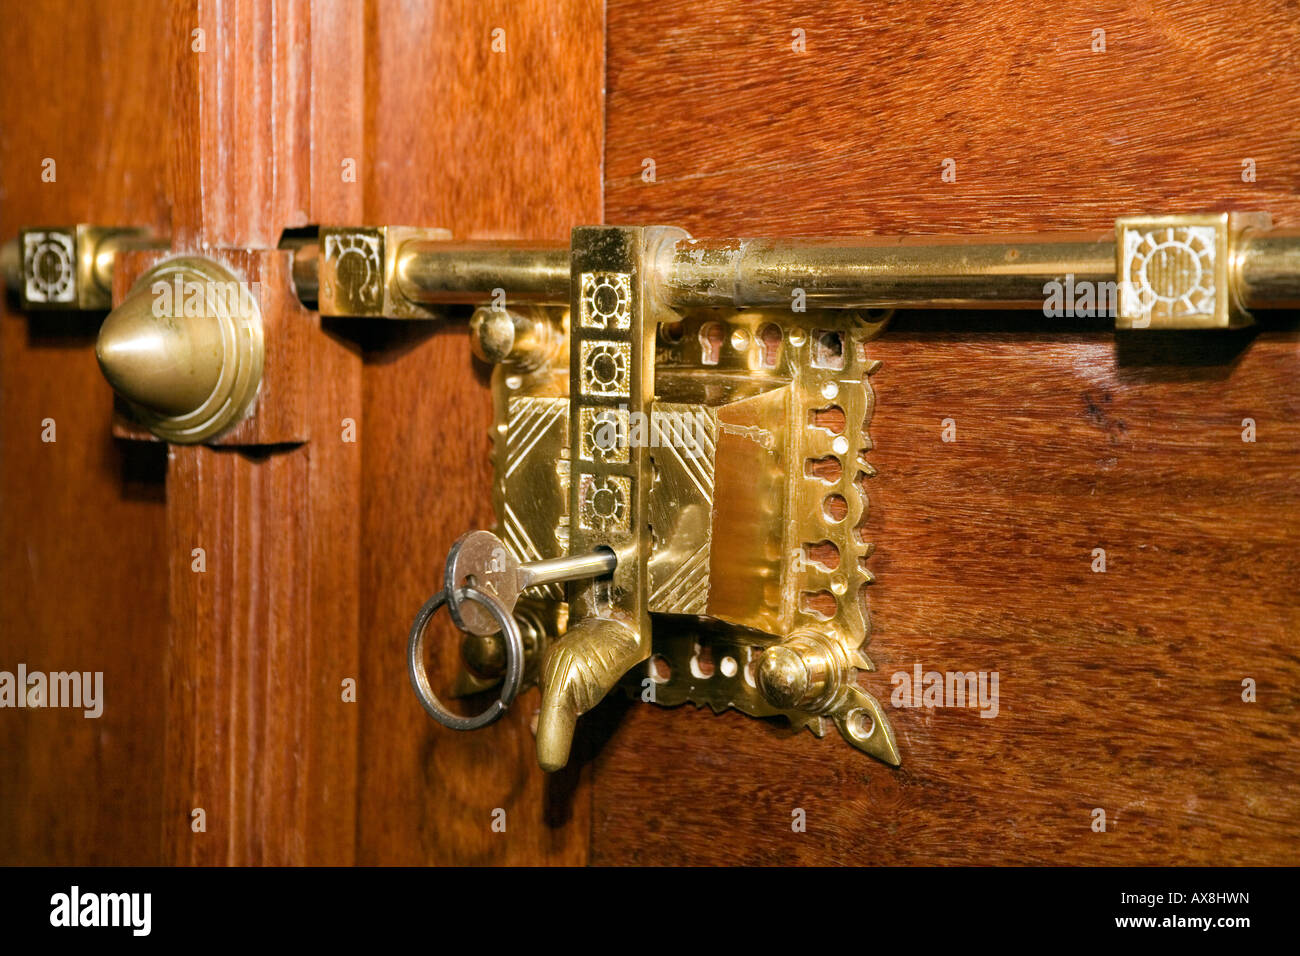 Antique Brass Door Latch And Lock Typical Of Traditional Keralite Fittings  Kerala South India